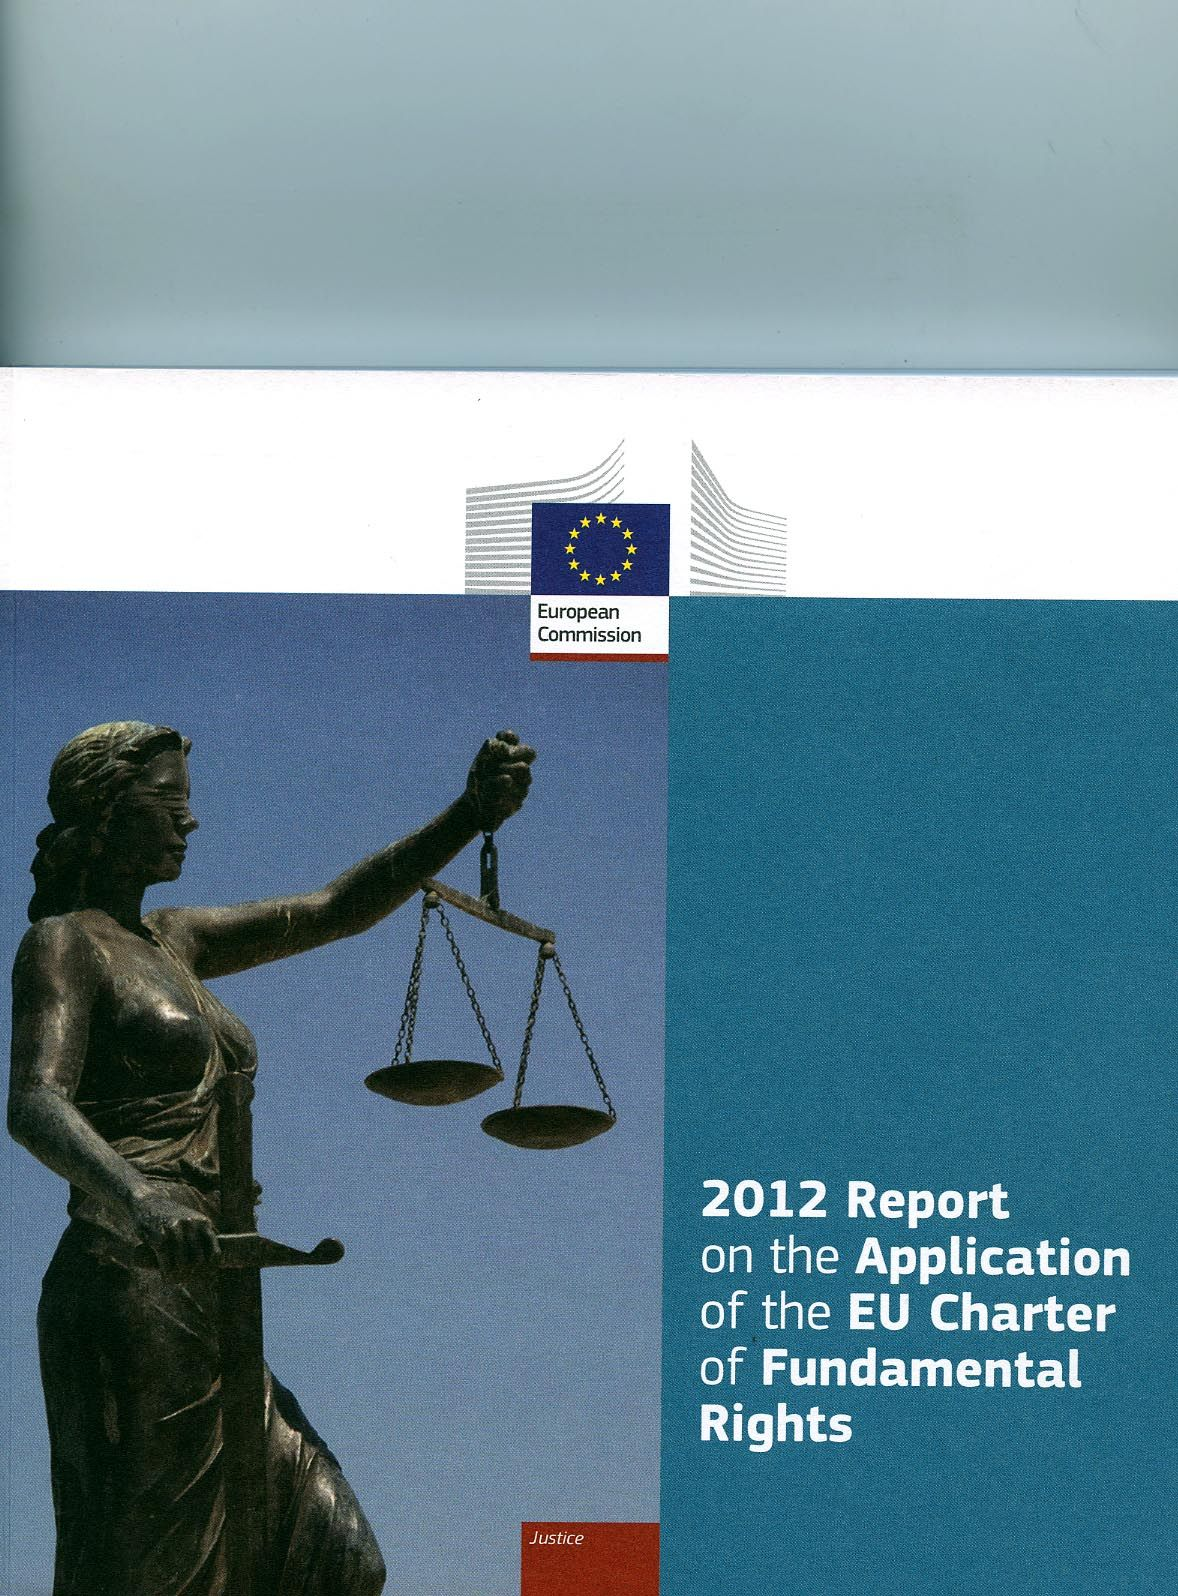 2012 Report on the application of the EU Charter of Fundamental Rights / [European Commission, Directorate General for Justice]. - Luxembourg : Publications Office of the European Union, 2013